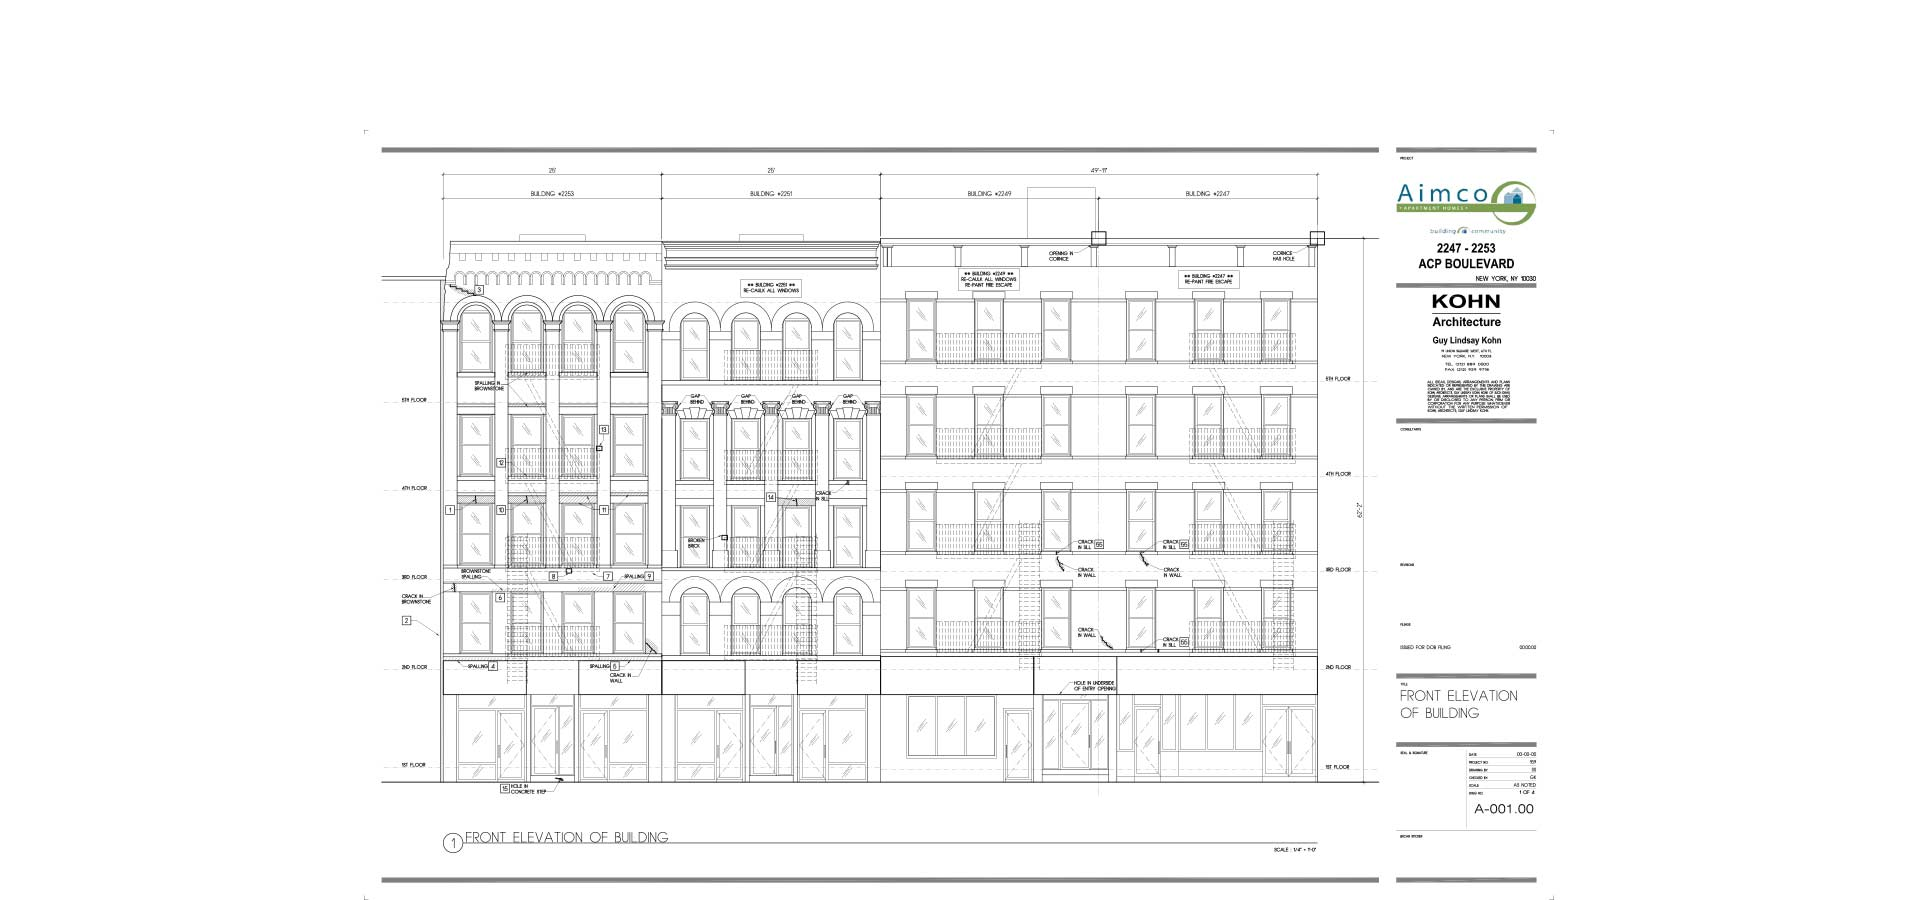 nyc department of buildings architectural blueprint for retail building architecture